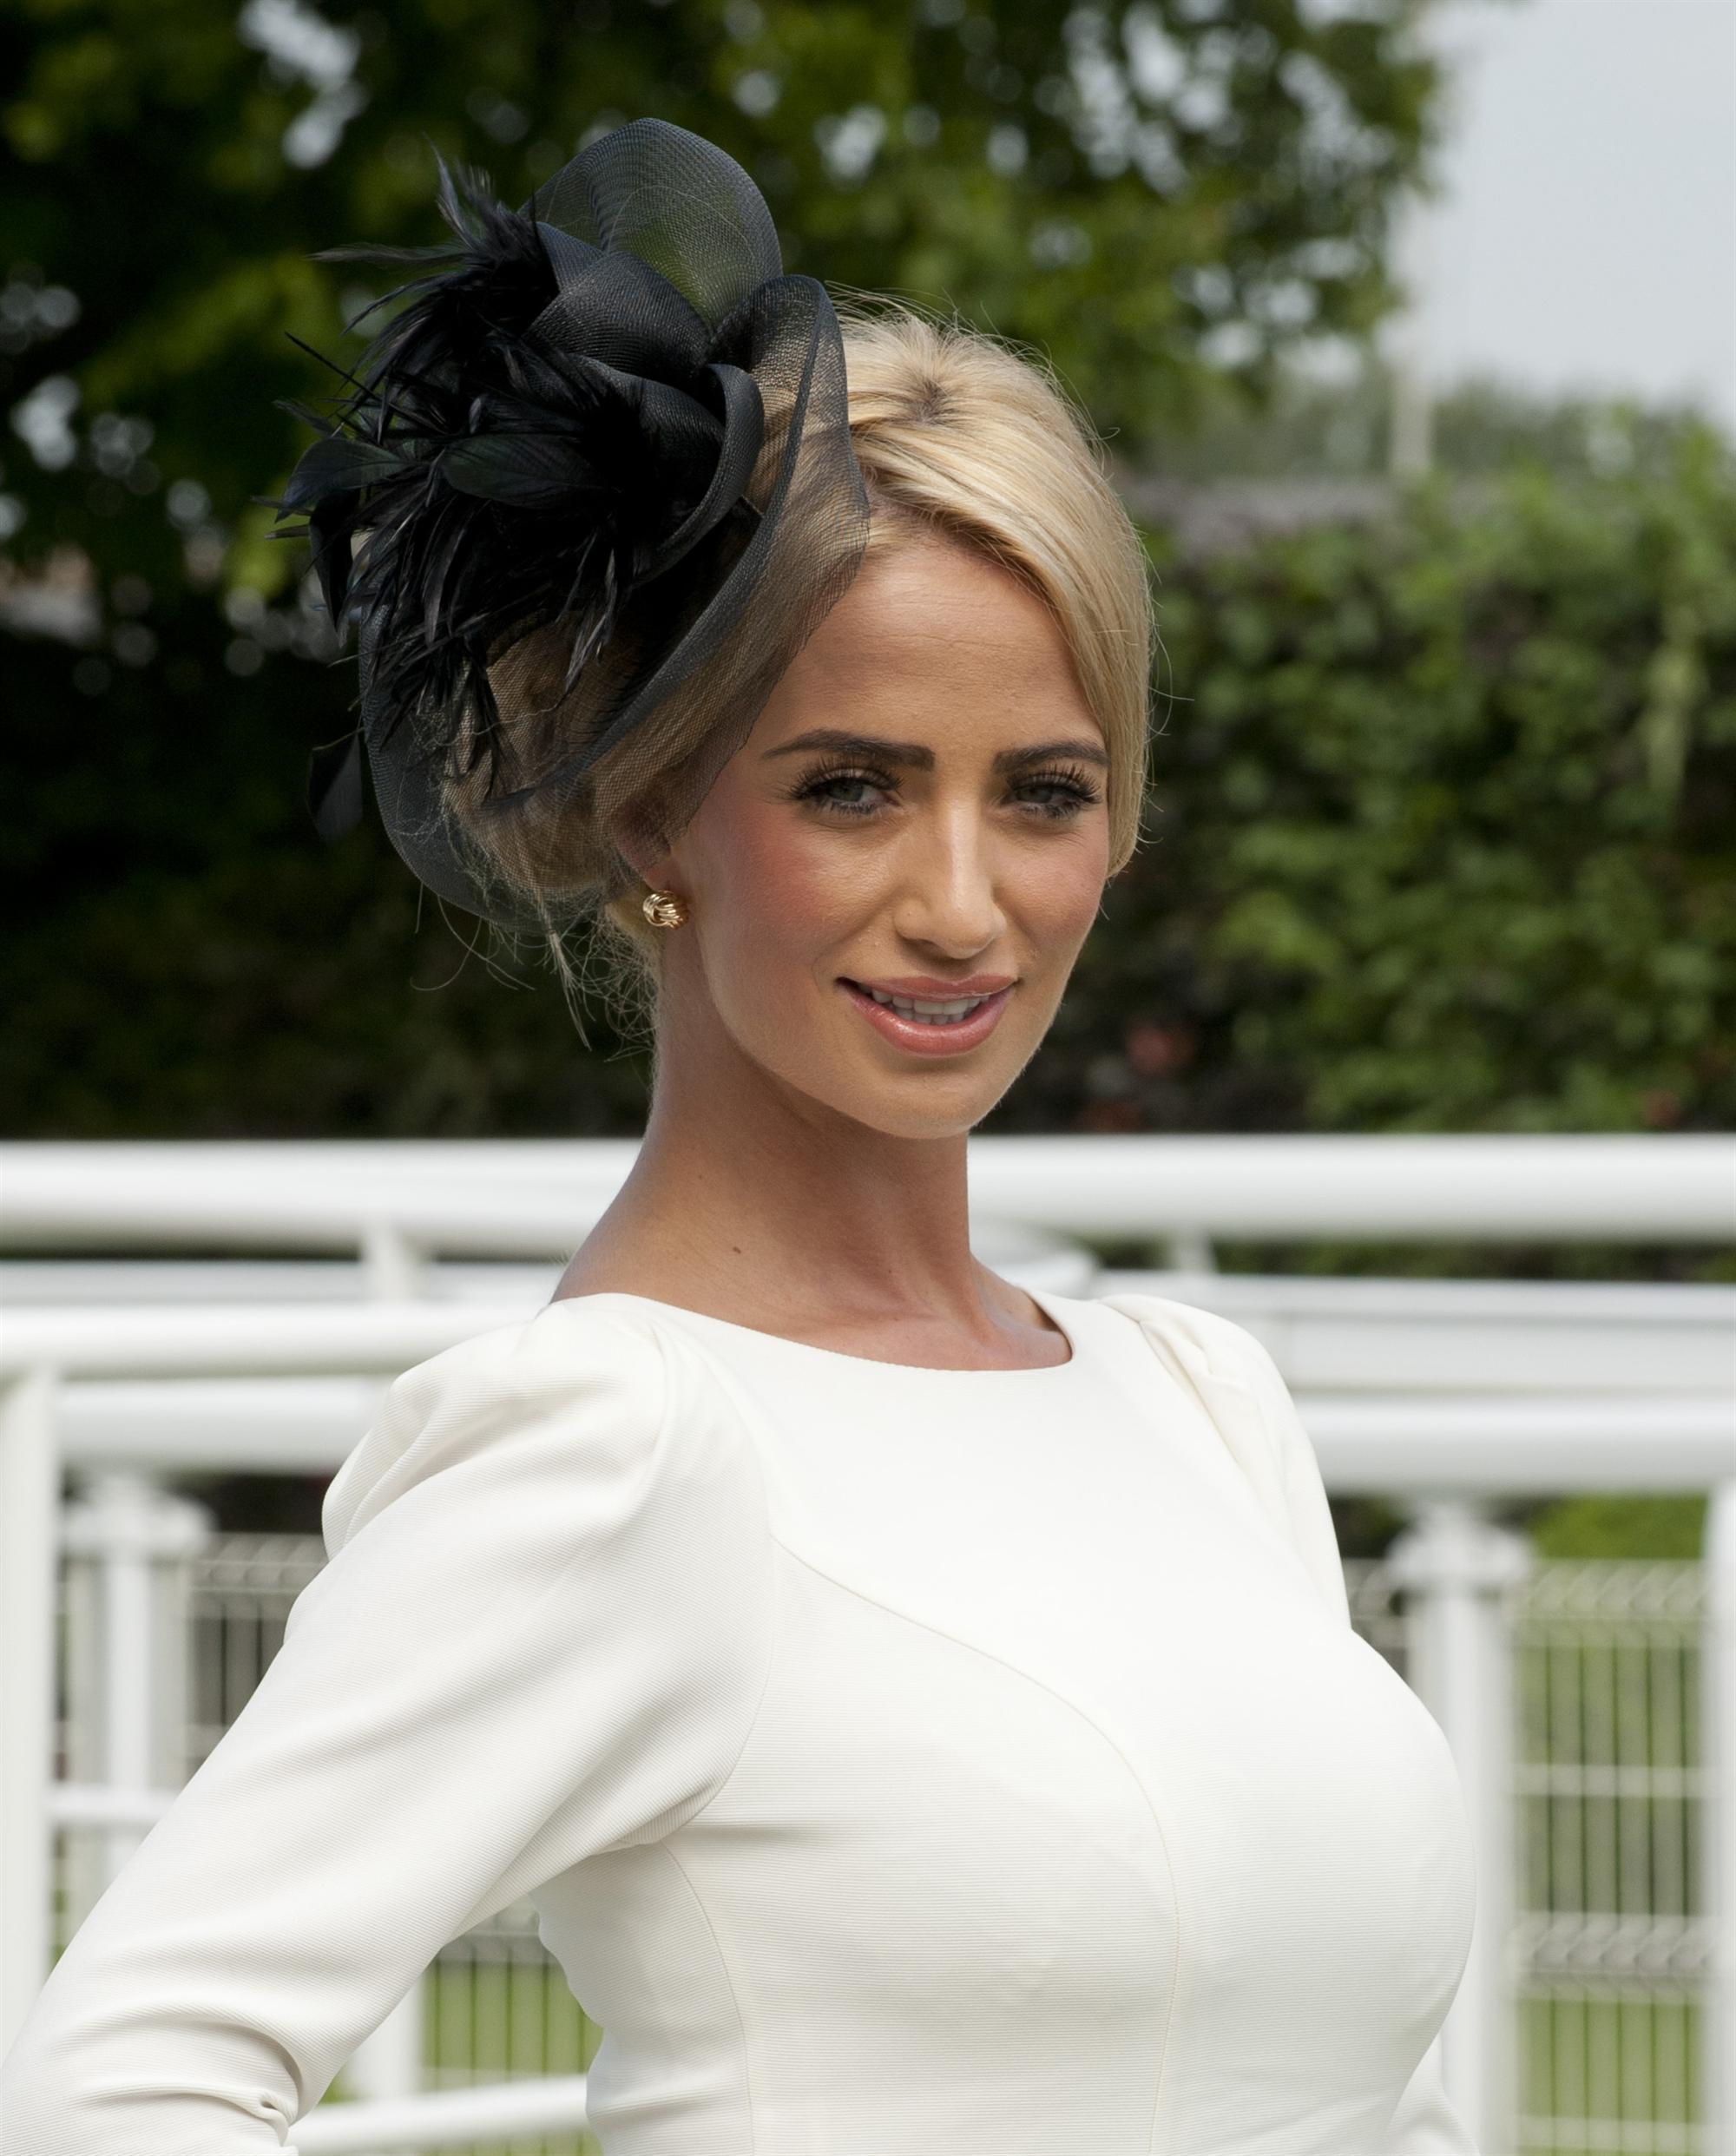 Chantelle Houghton 1 286 HQ-UHQ Pics